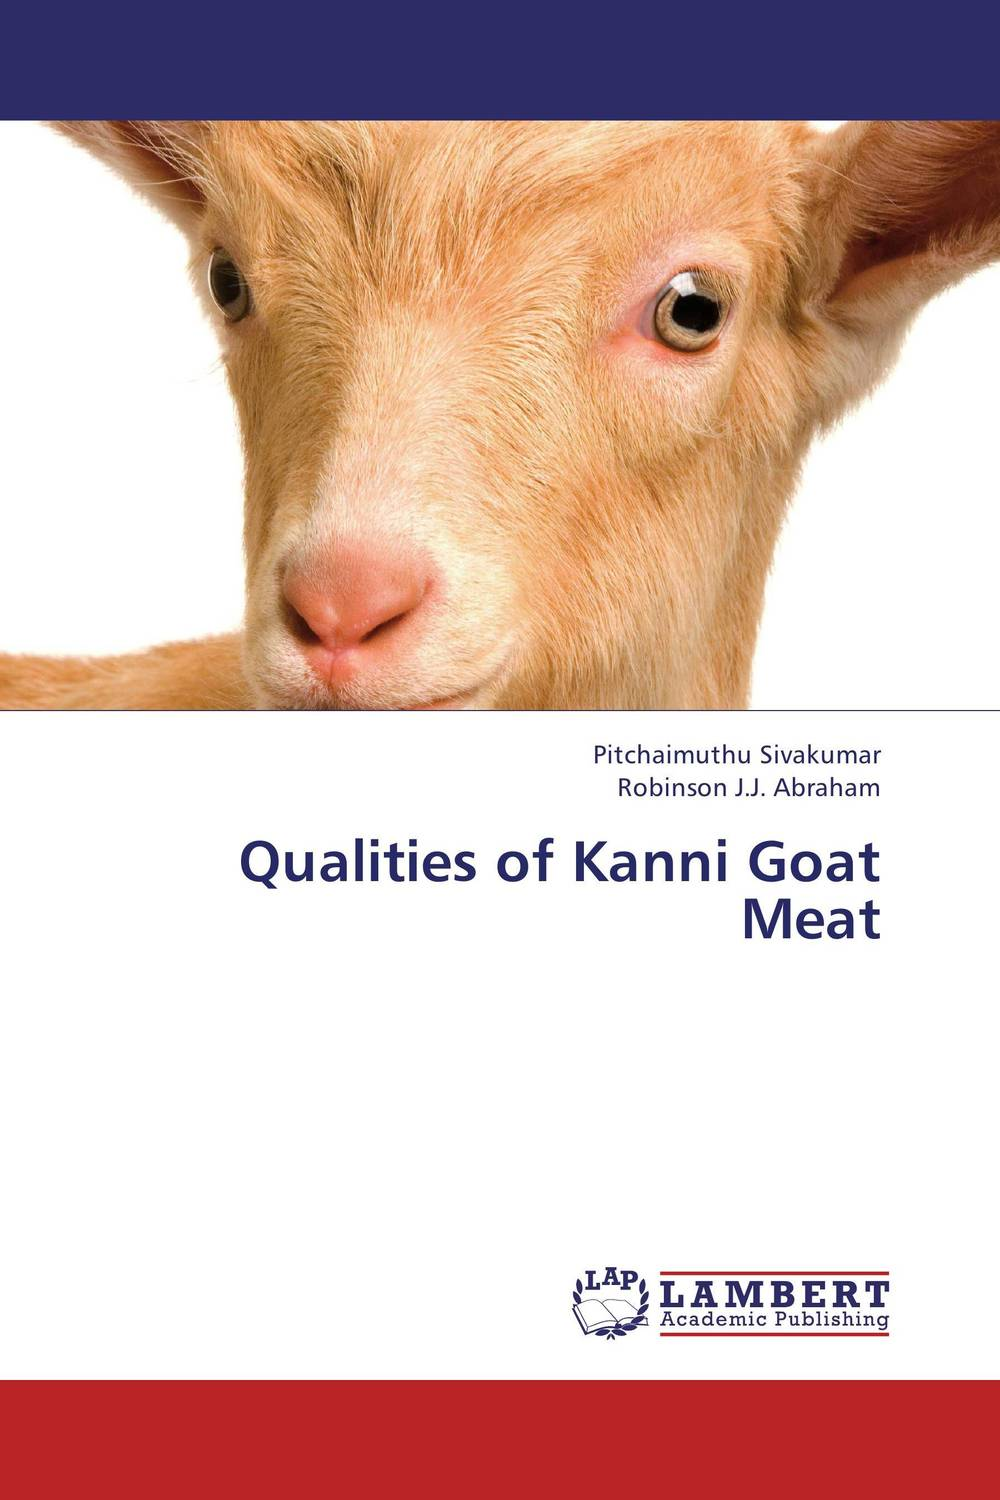 Qualities of Kanni Goat Meat